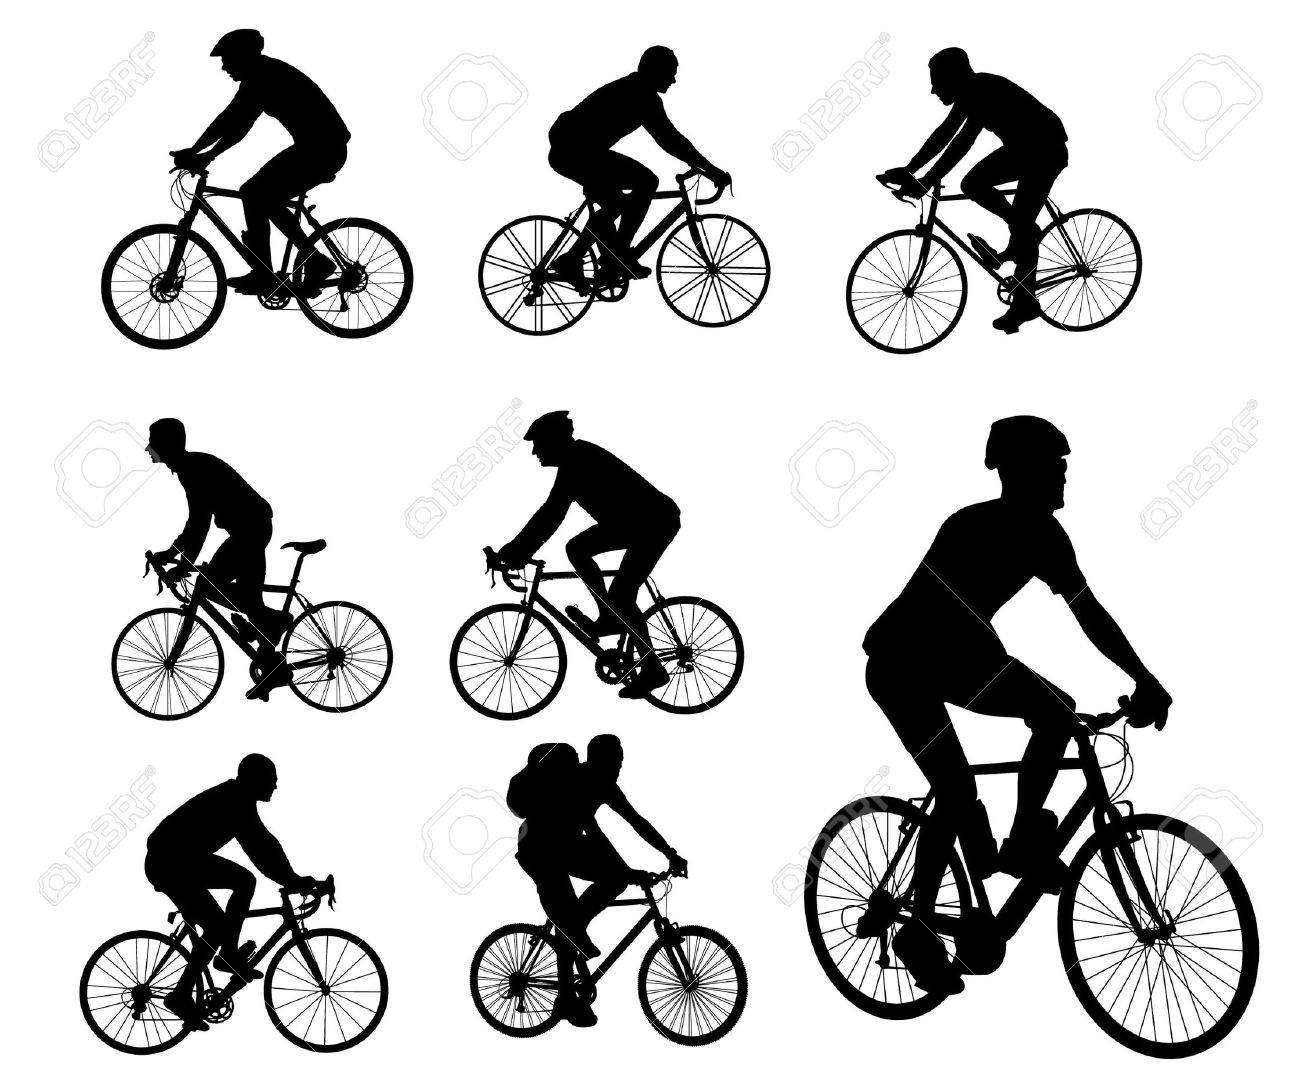 bicyclists silhouettes collection Stock Vector - 13459828